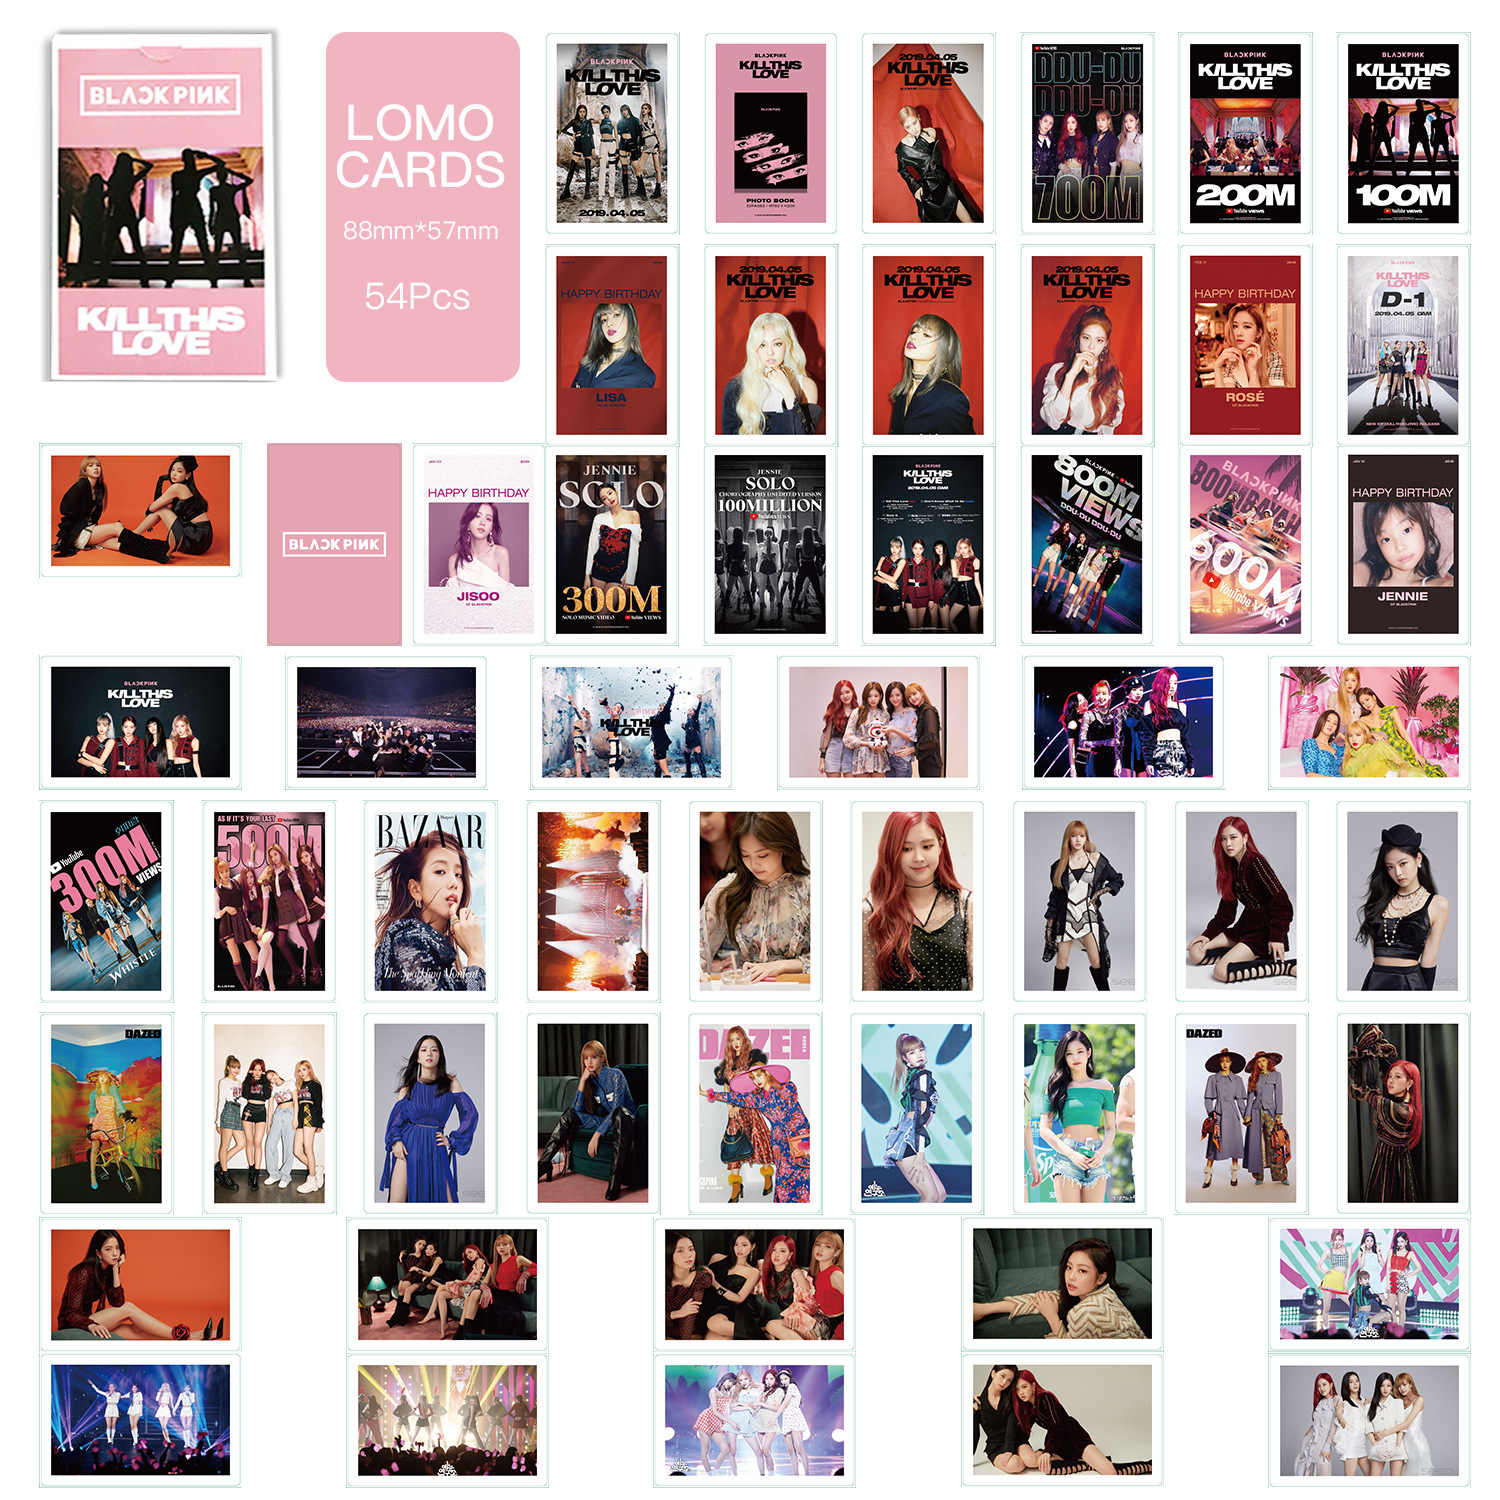 54 pçs/set kpop blackpink lomo cartão novo álbum de fotos jisoo rosa lisa jieene photocard hd álbum cartaz K-POP preto rosa